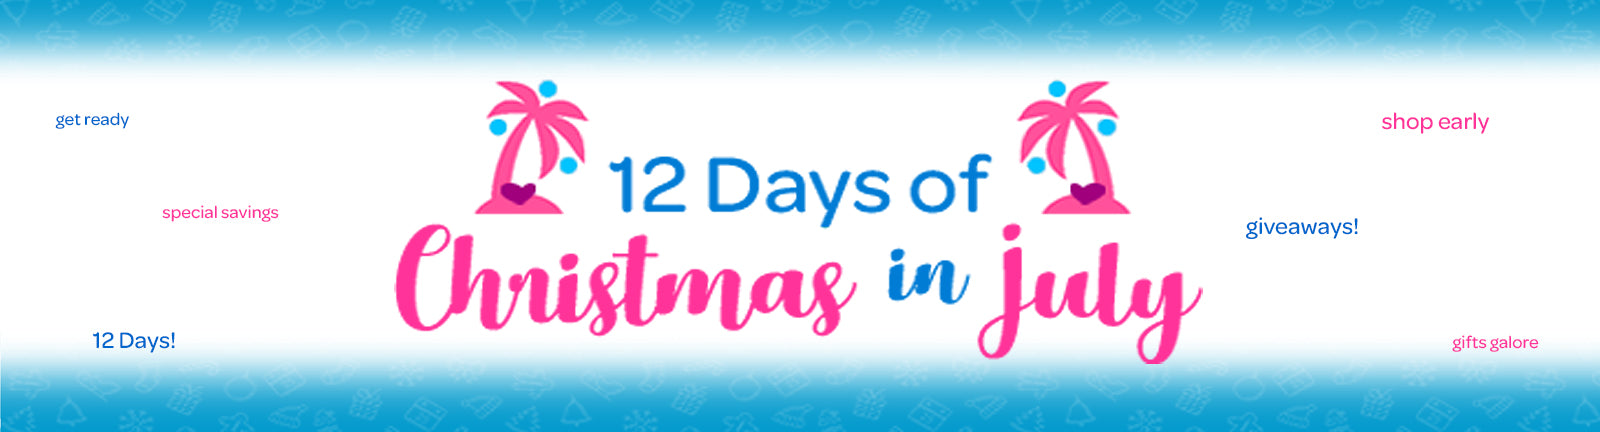 12 Days of Christmas in July